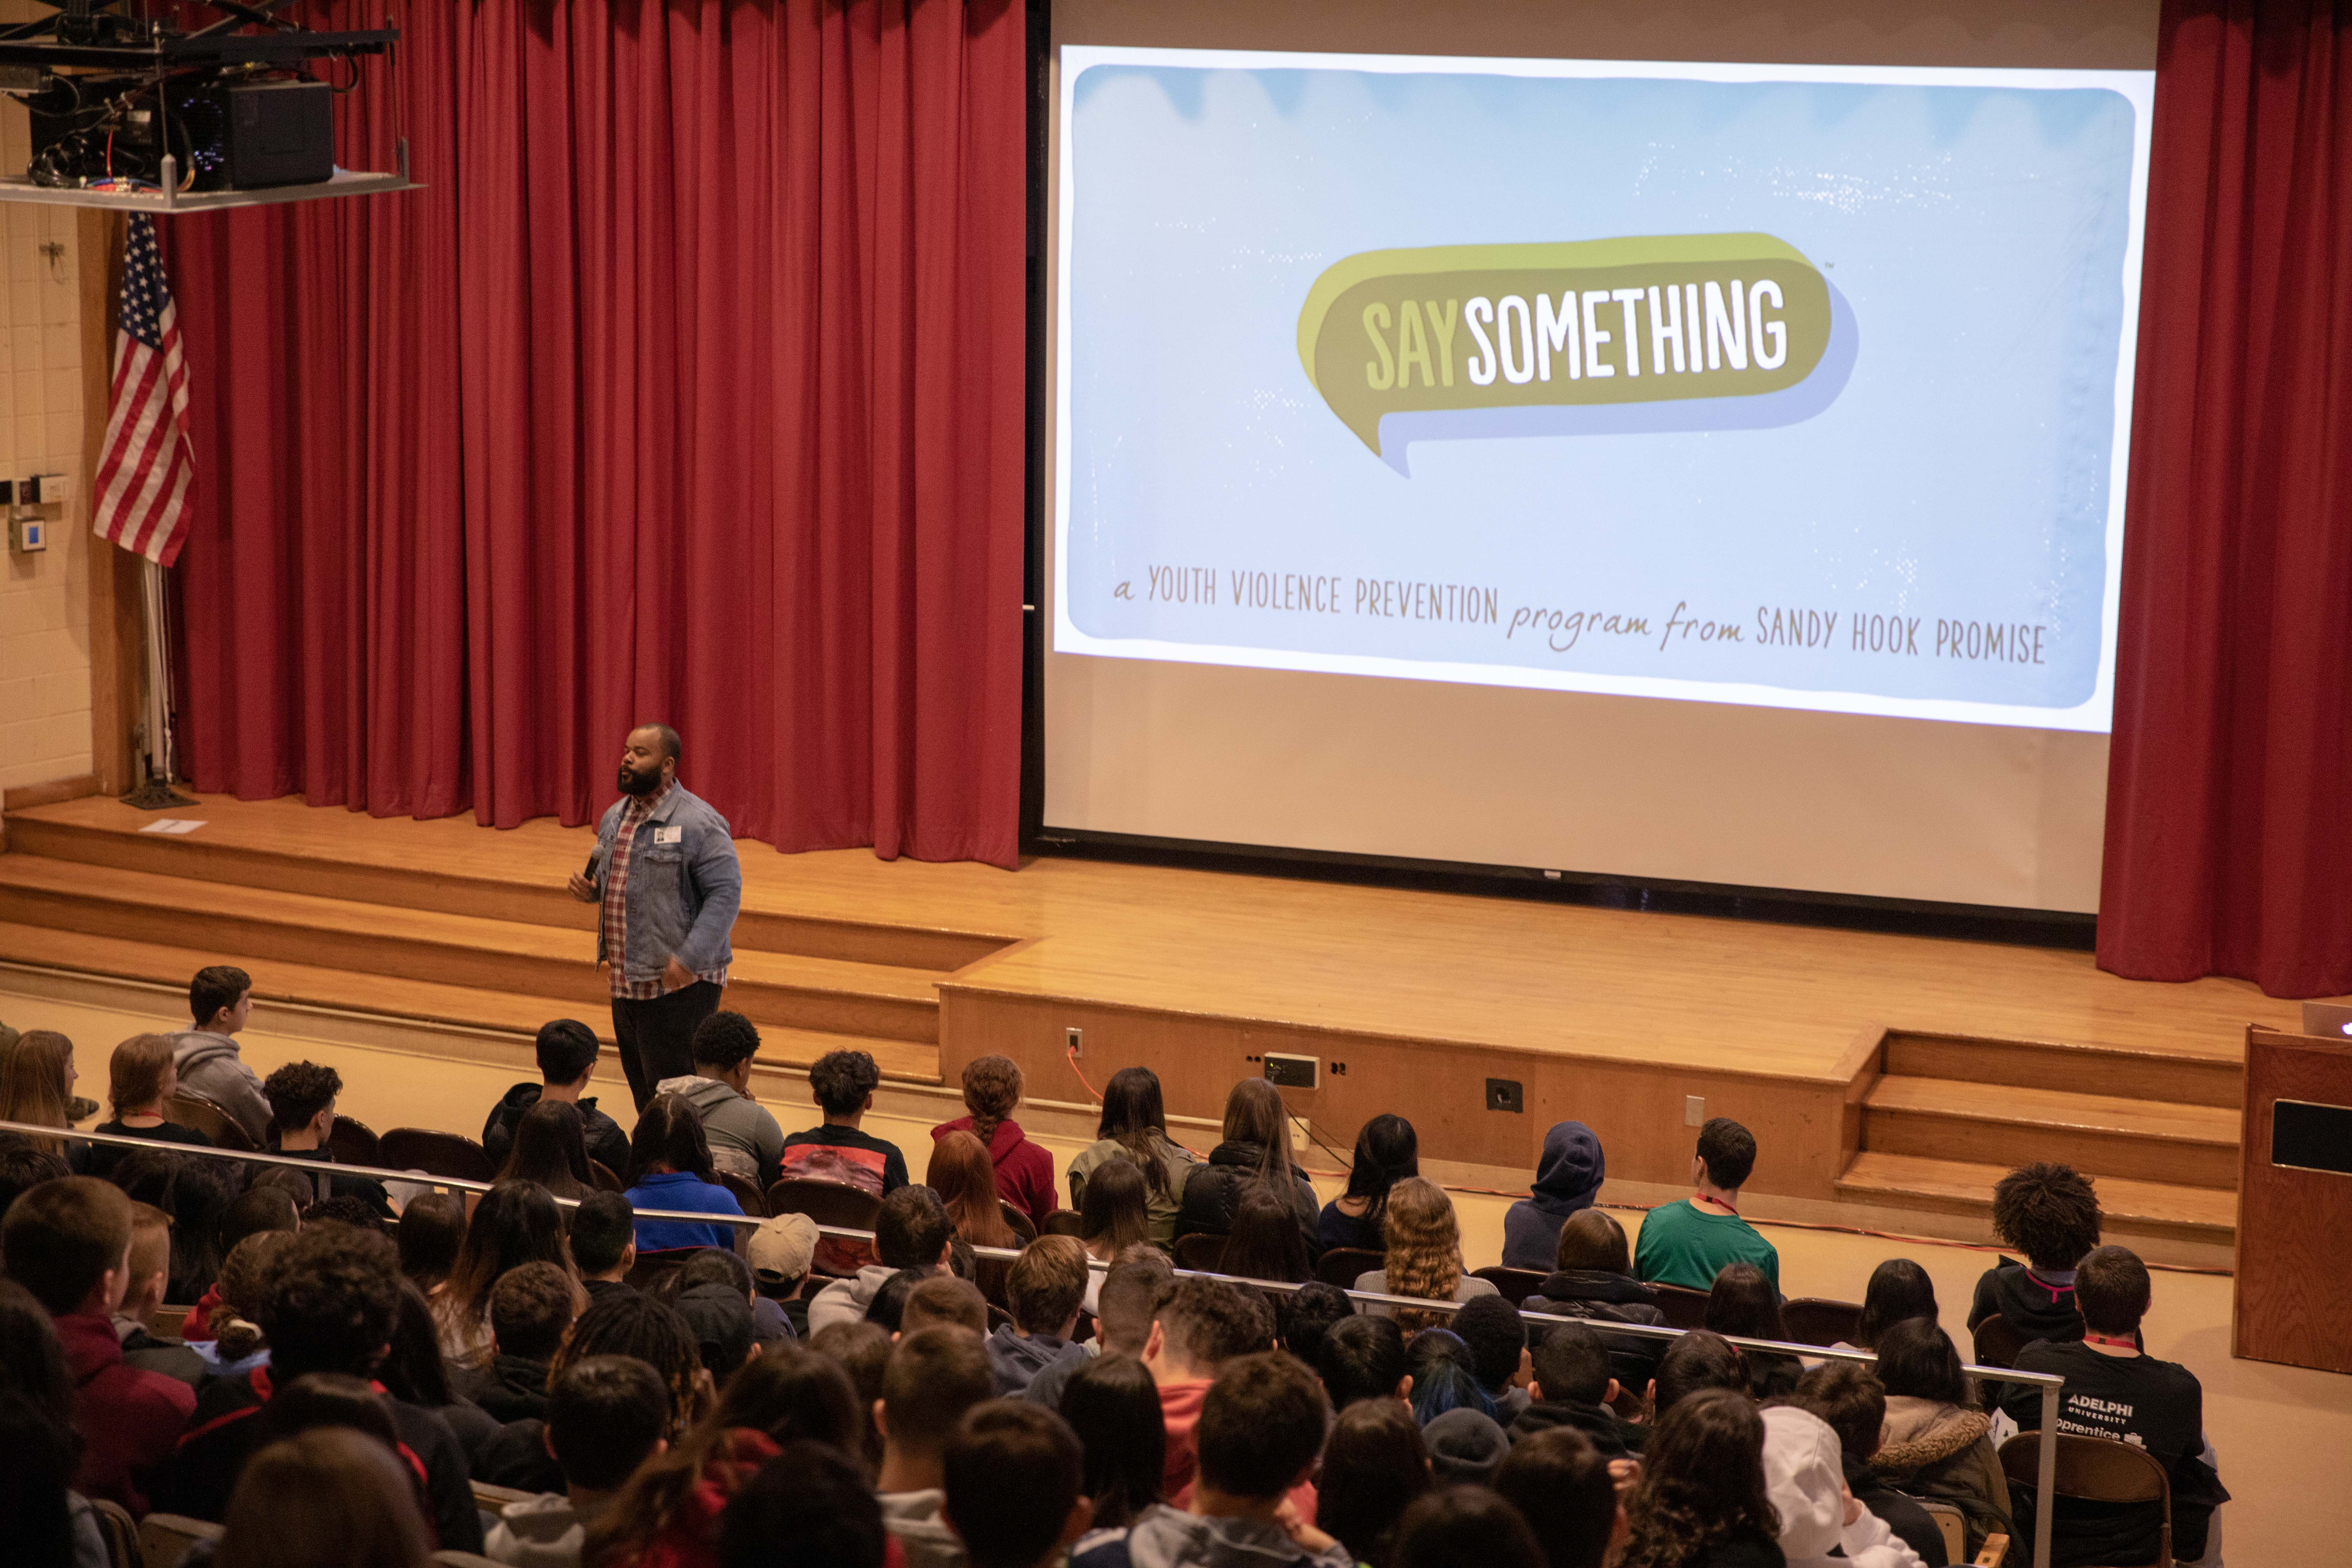 Students Receive Training On Say Something Anonymous Reporting App